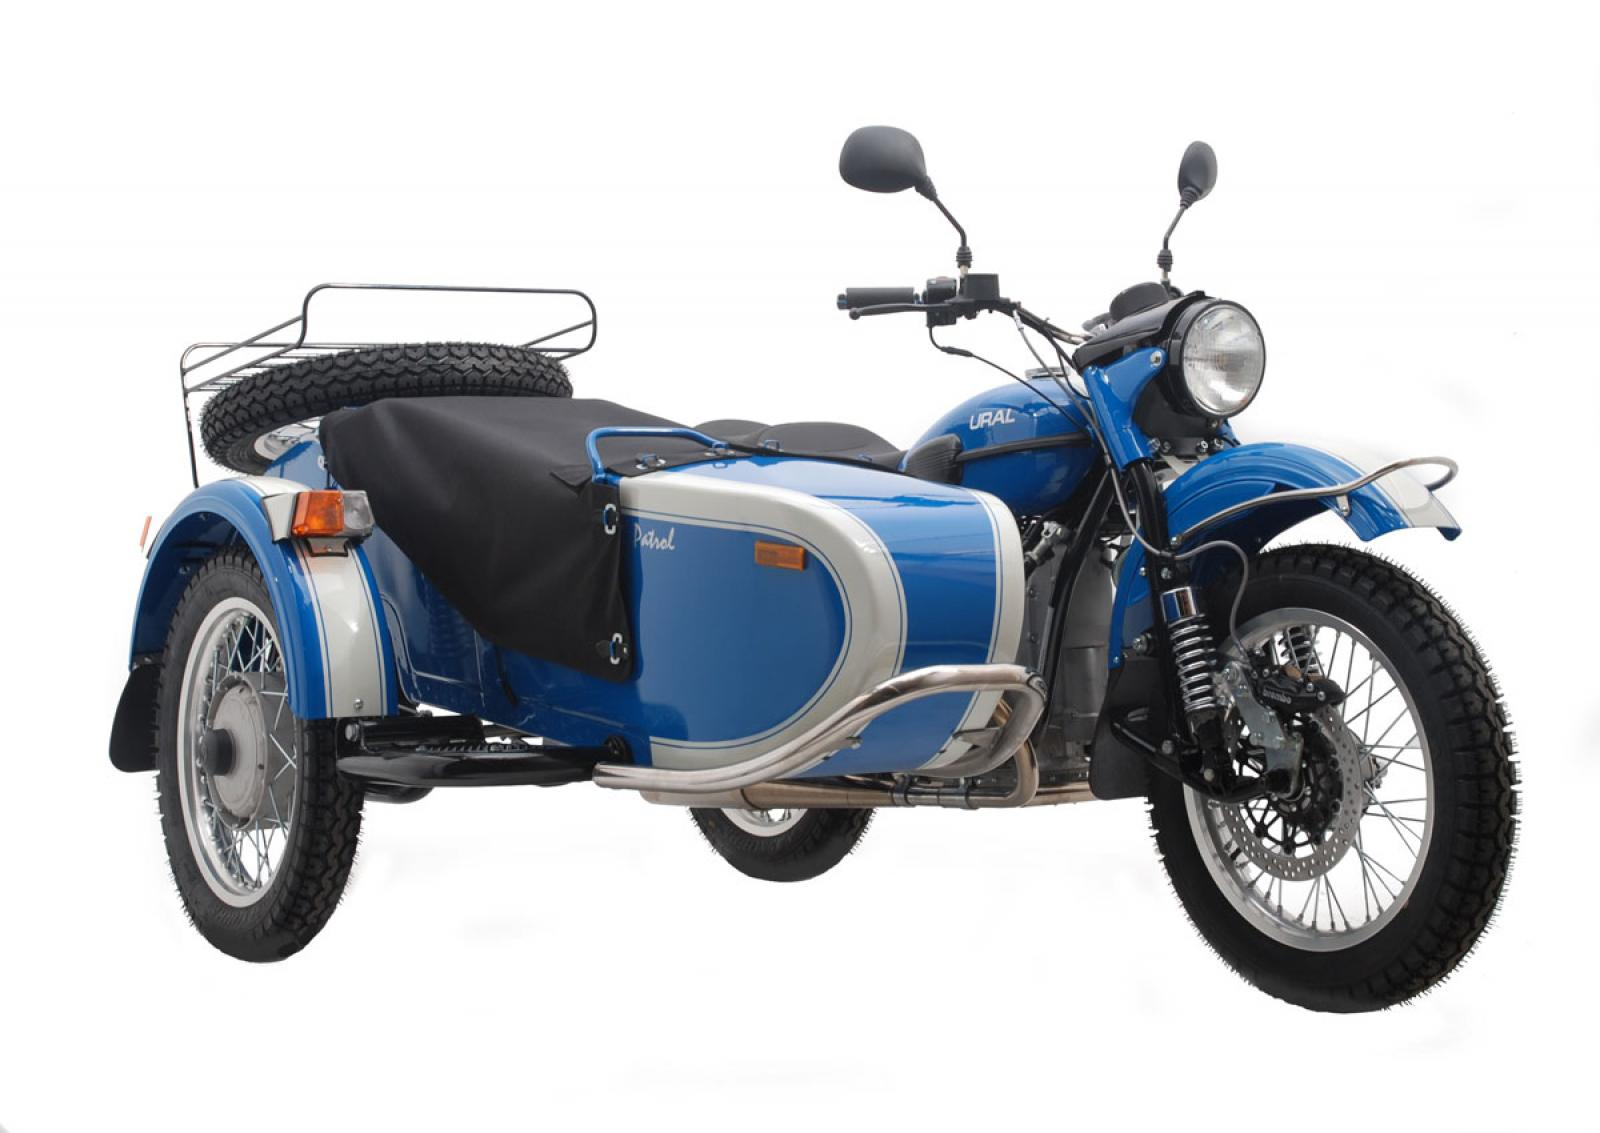 2011 Ural Snow Leopard Limited Edition #2